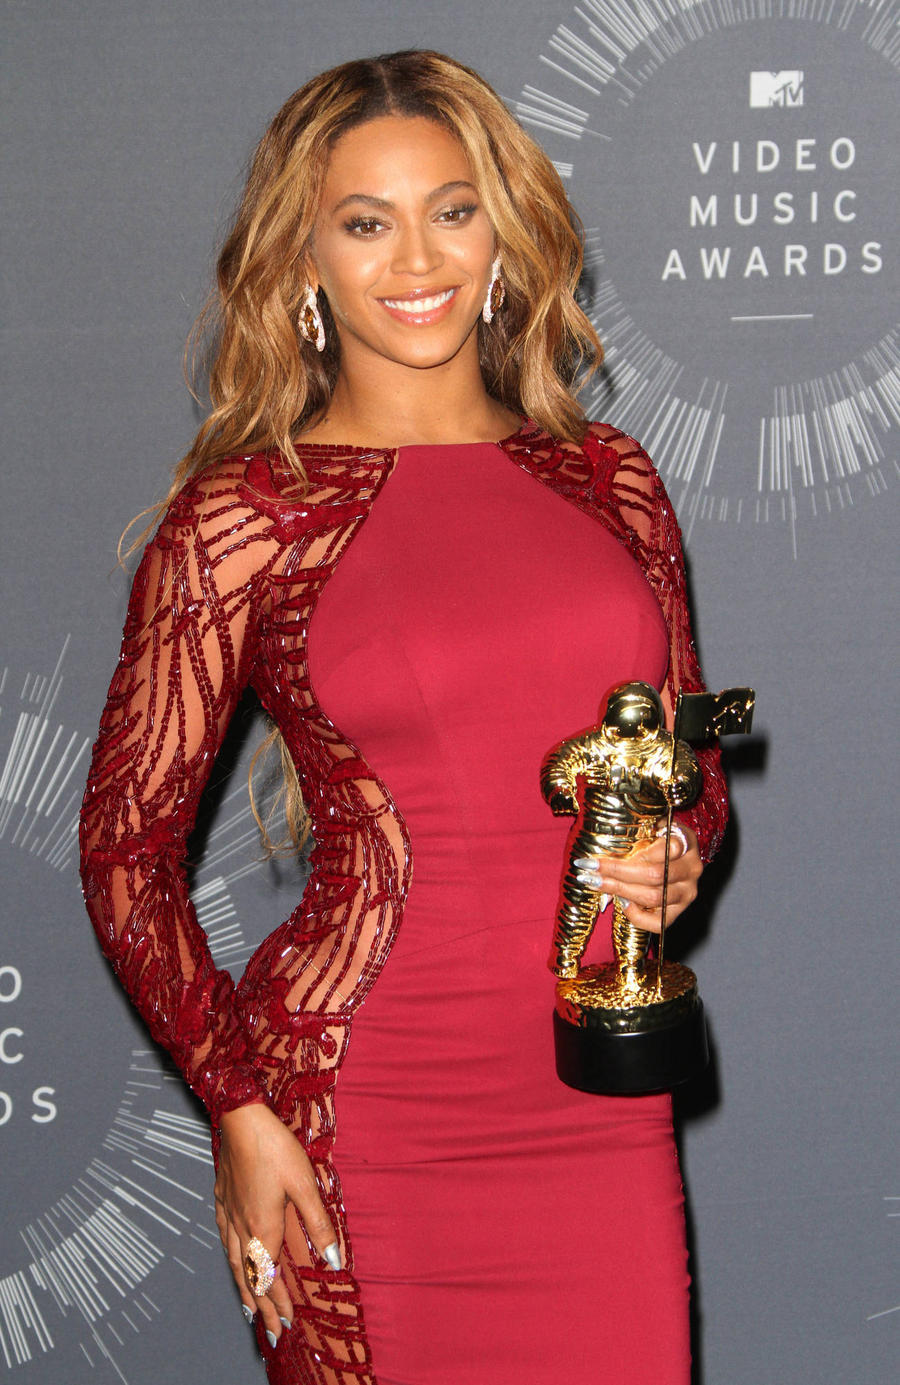 Beyonce Album To Feature Adele, Mariah Carey - Report